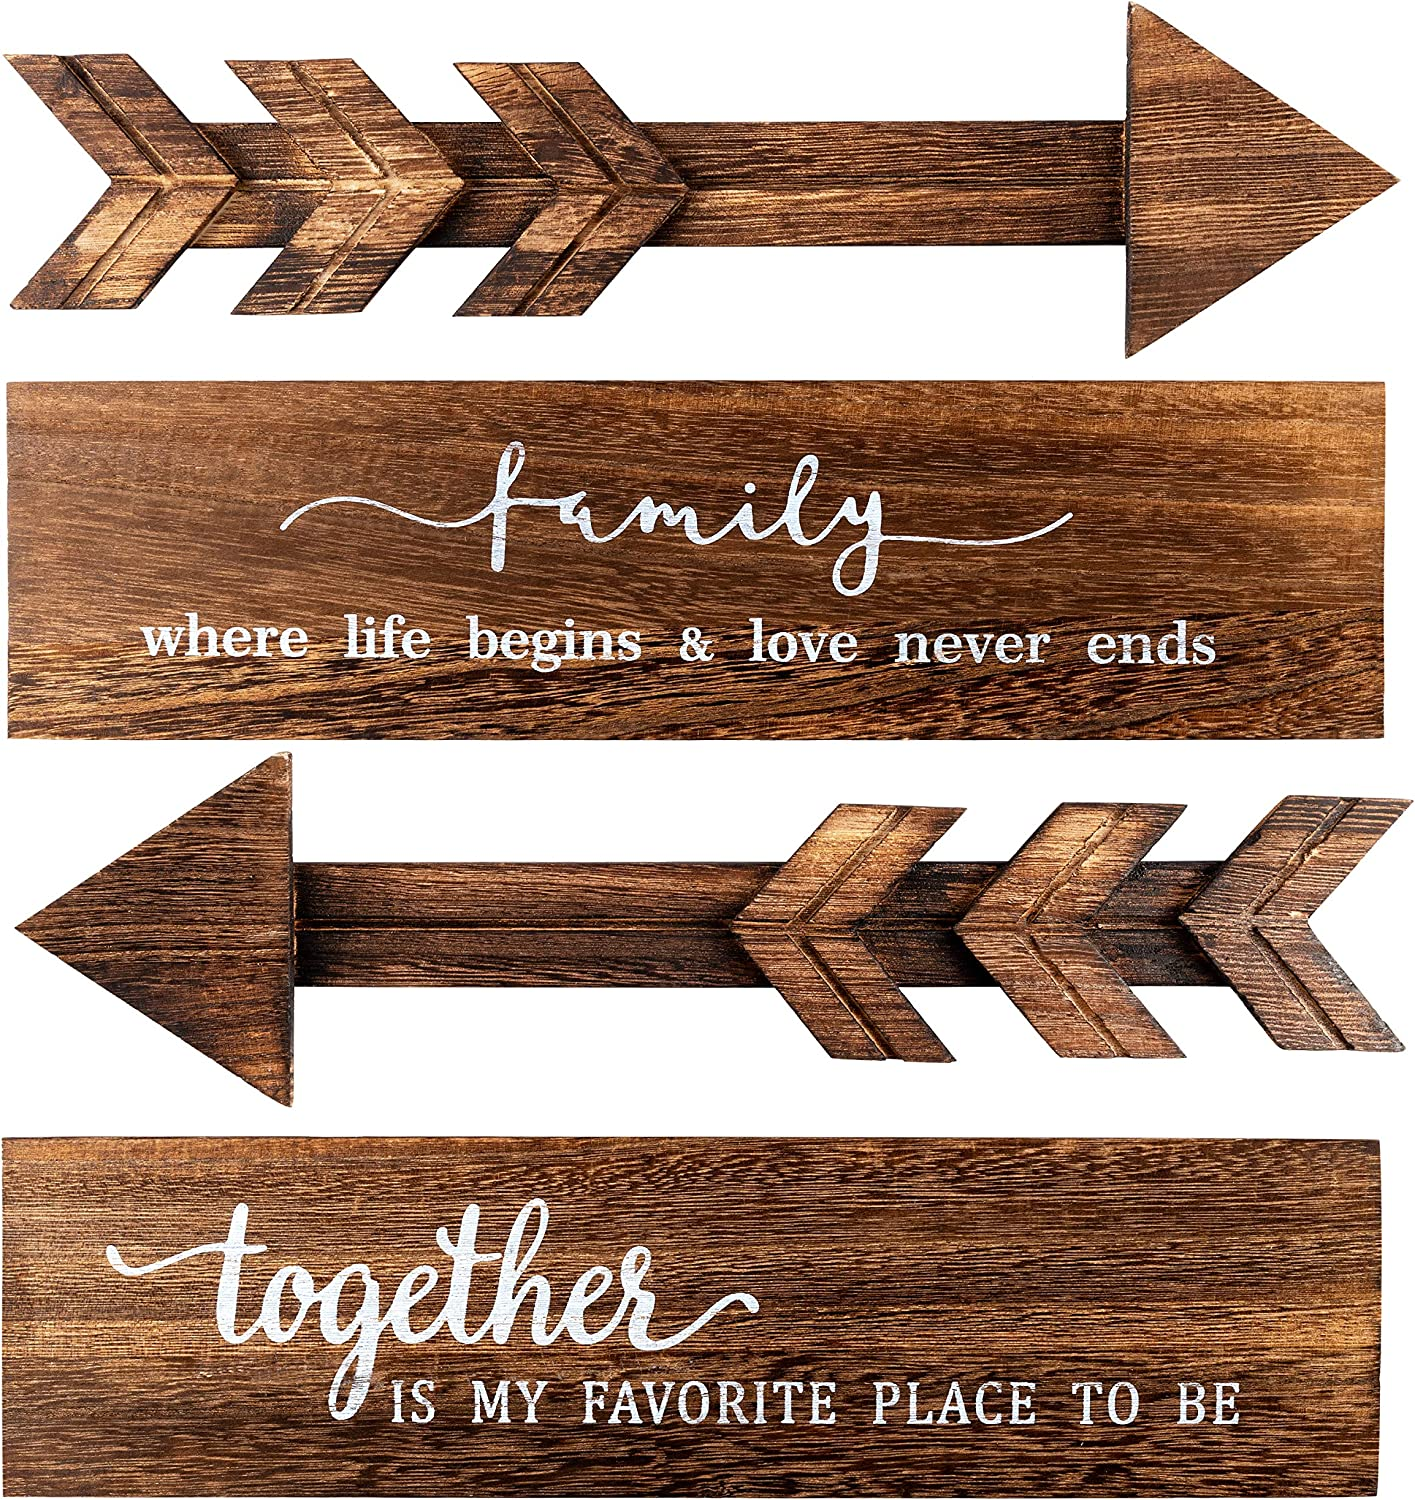 4 Pcs Rustic Wood Arrow Sign Wall Decor Family Together Wooden Wall Sign Wooden Arrow Hanging Signs Printed Wooden Sign Rustic Background Wall Decor Farmhouse Entryway Porch Signs, 15 x 4 x 0.2 inch